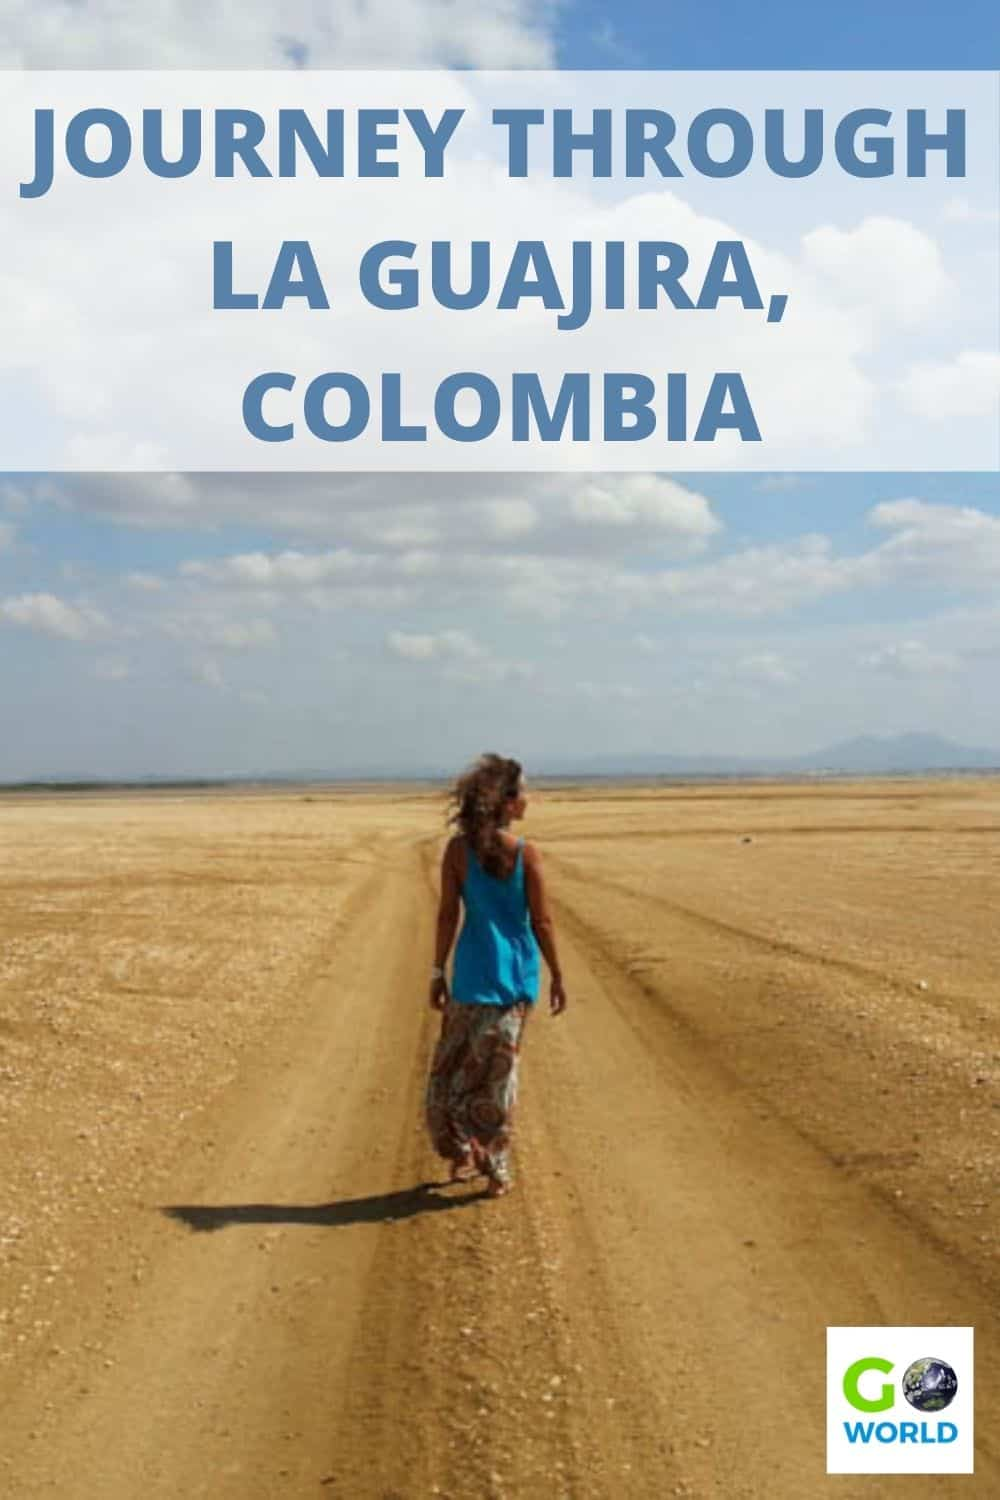 A journey through La Guajira, Colombia is an opportunity to meet the Wayuu people, visit remote villages and see the colorful coastal desert. #SouthAmericaTravel #Colombiatravel